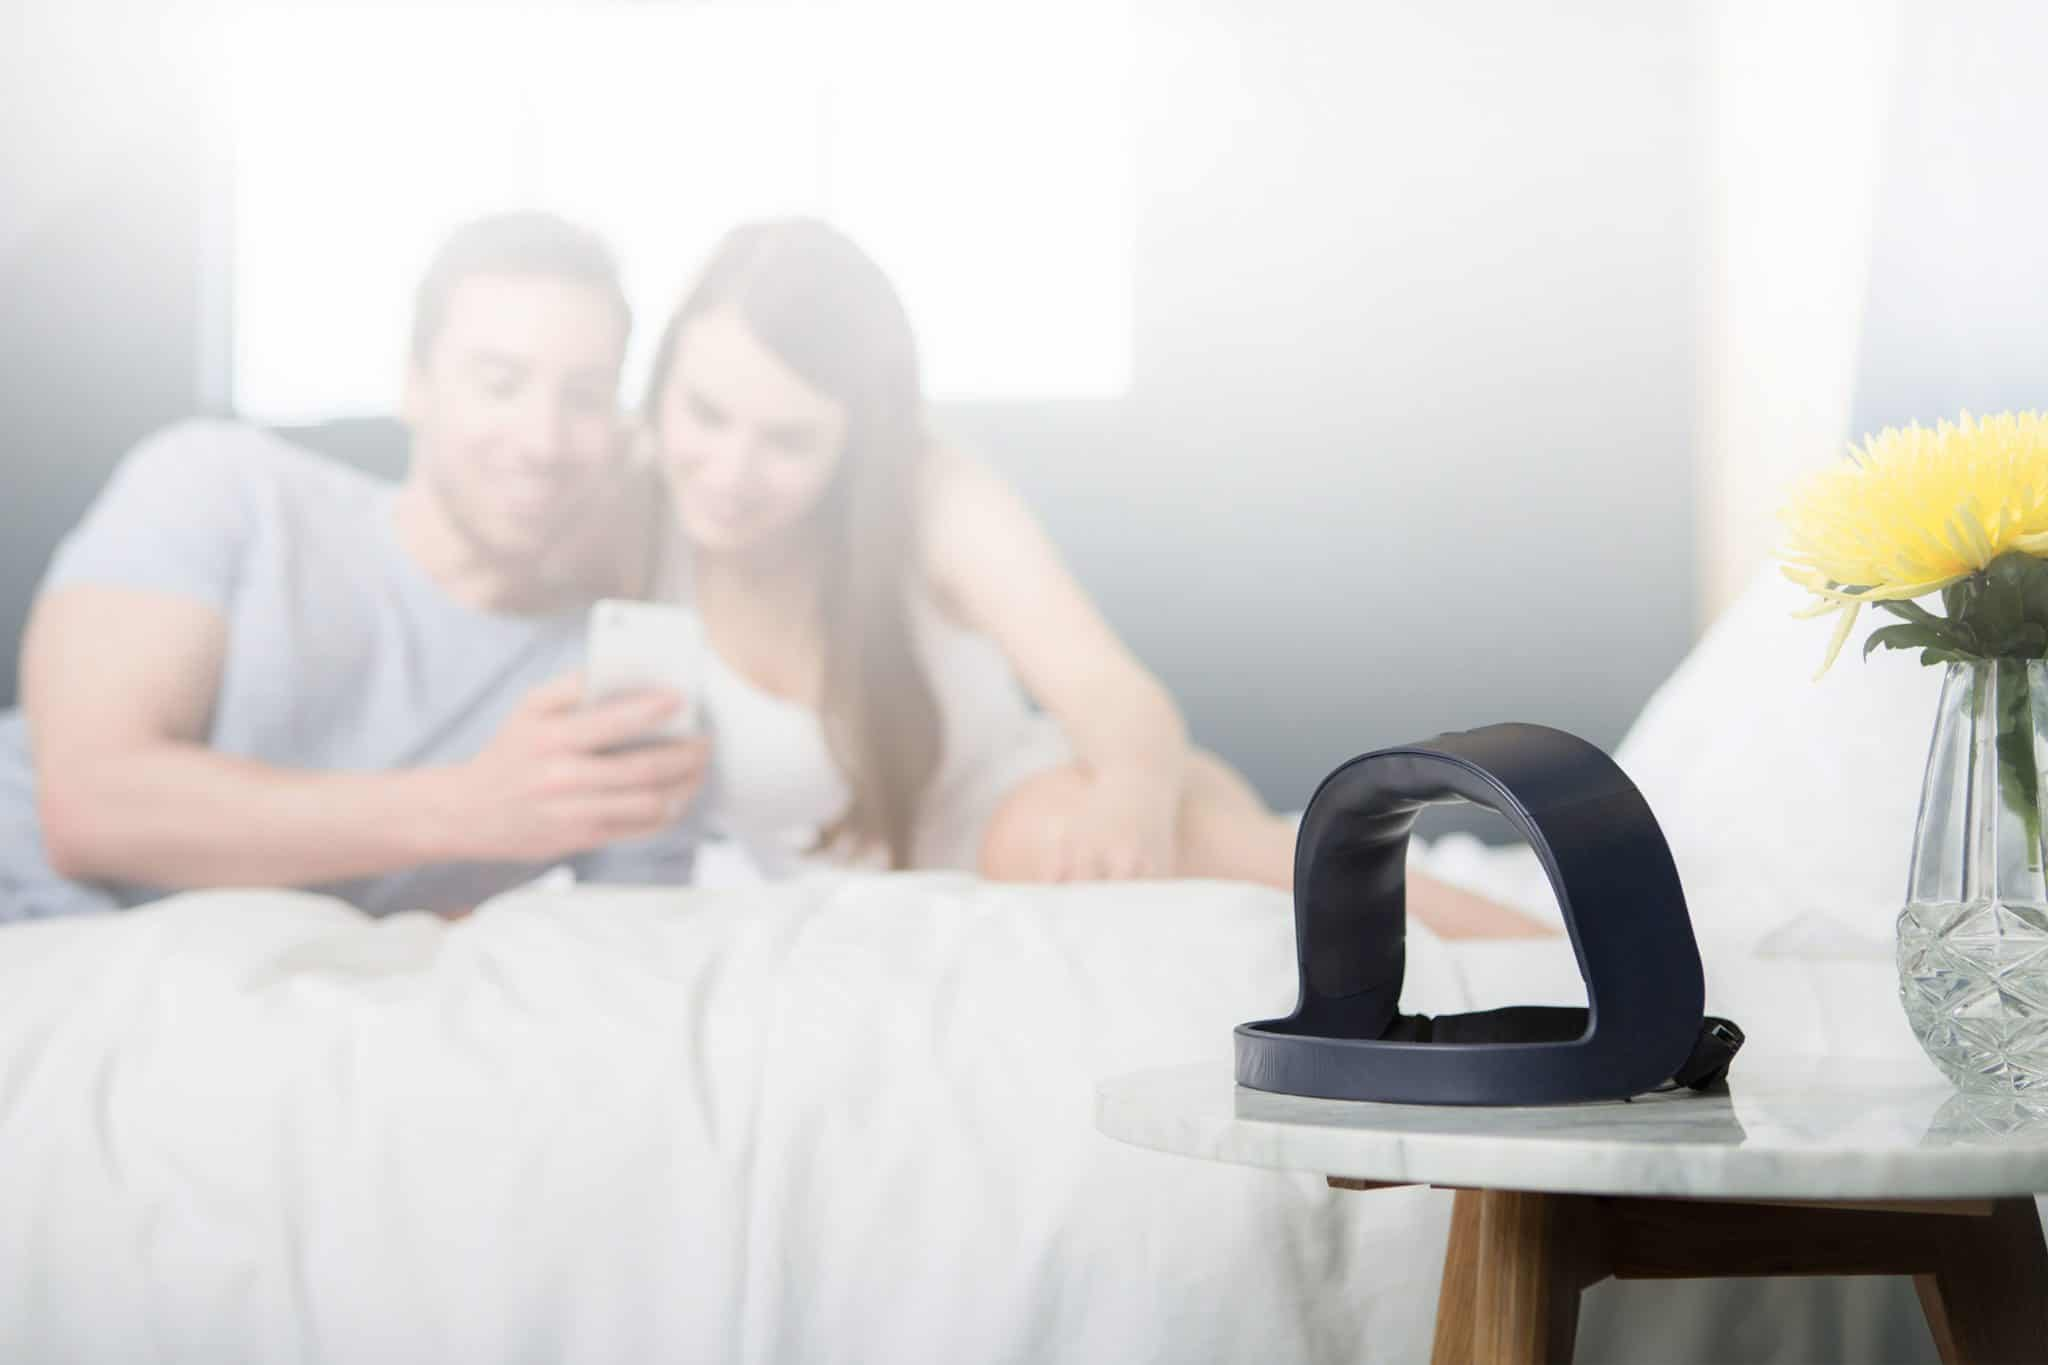 dreem headband monitors brain activity to help you sleep 3 - Dreem headband monitors brain activity to help you sleep